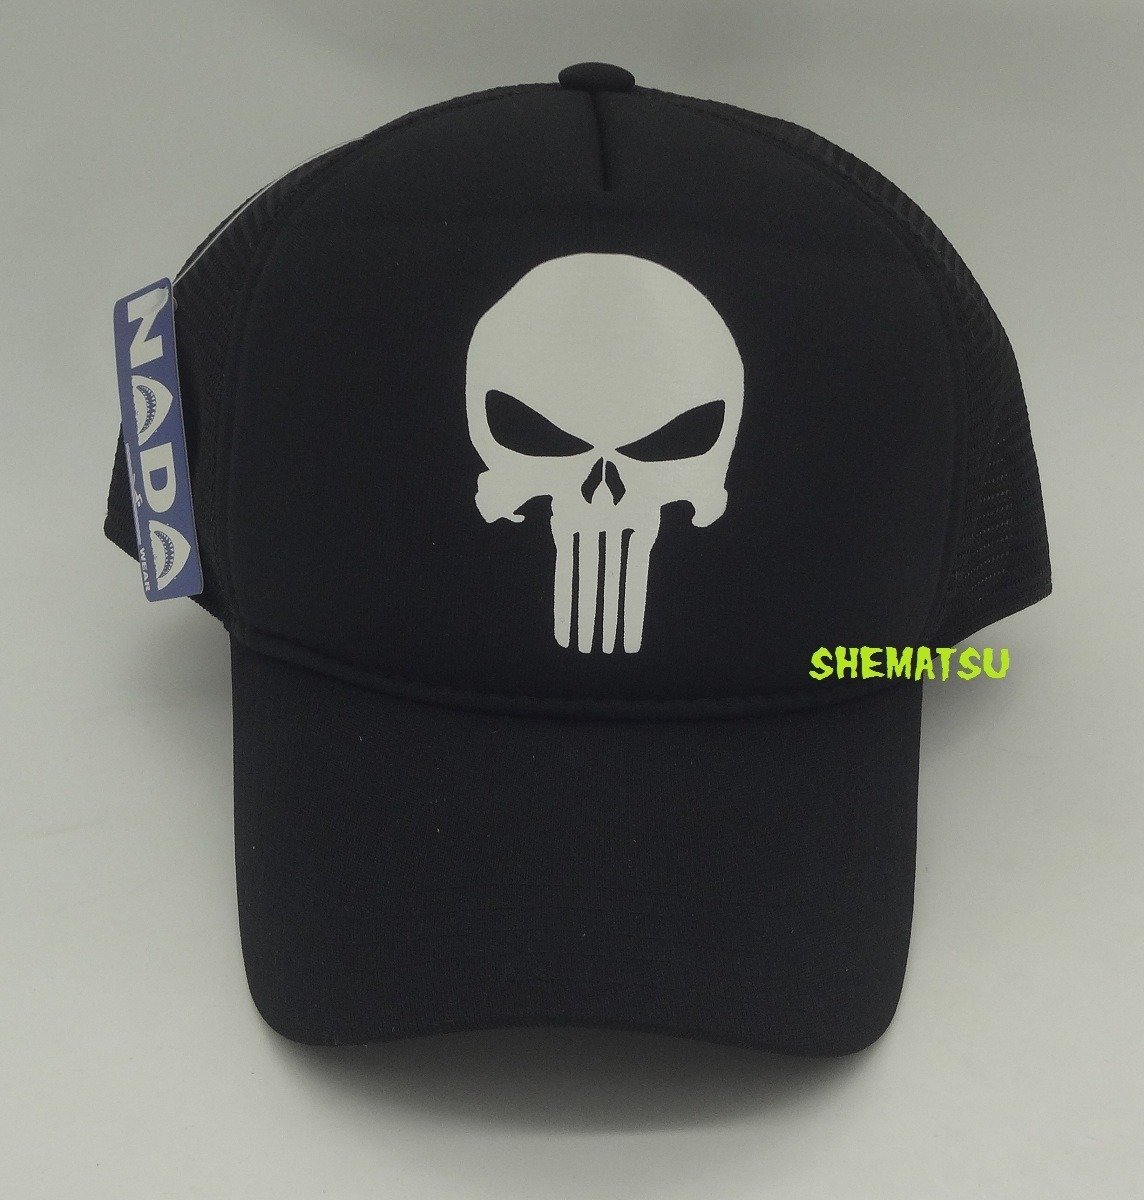 f904447078b4a boné trucker preto silk justiceiro caveira the punisher tela. Carregando  zoom.